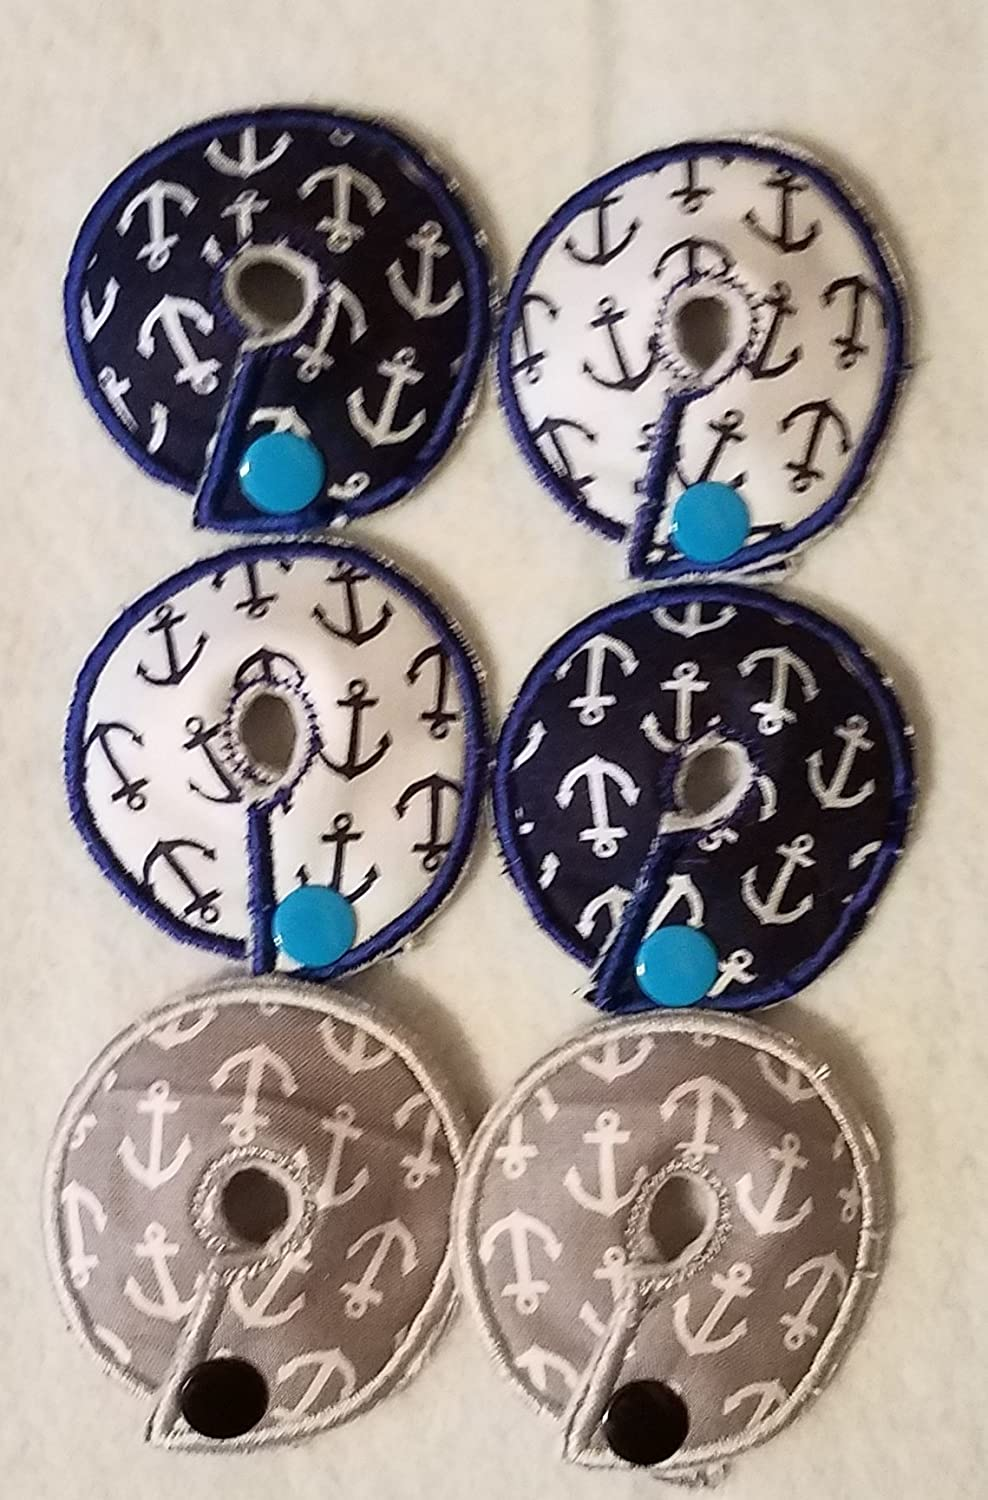 Adorable Pads G/J Tube Pad 6 Pack (anchor1) Organic Bamboo Extra Soft Fleece Next to the Skin